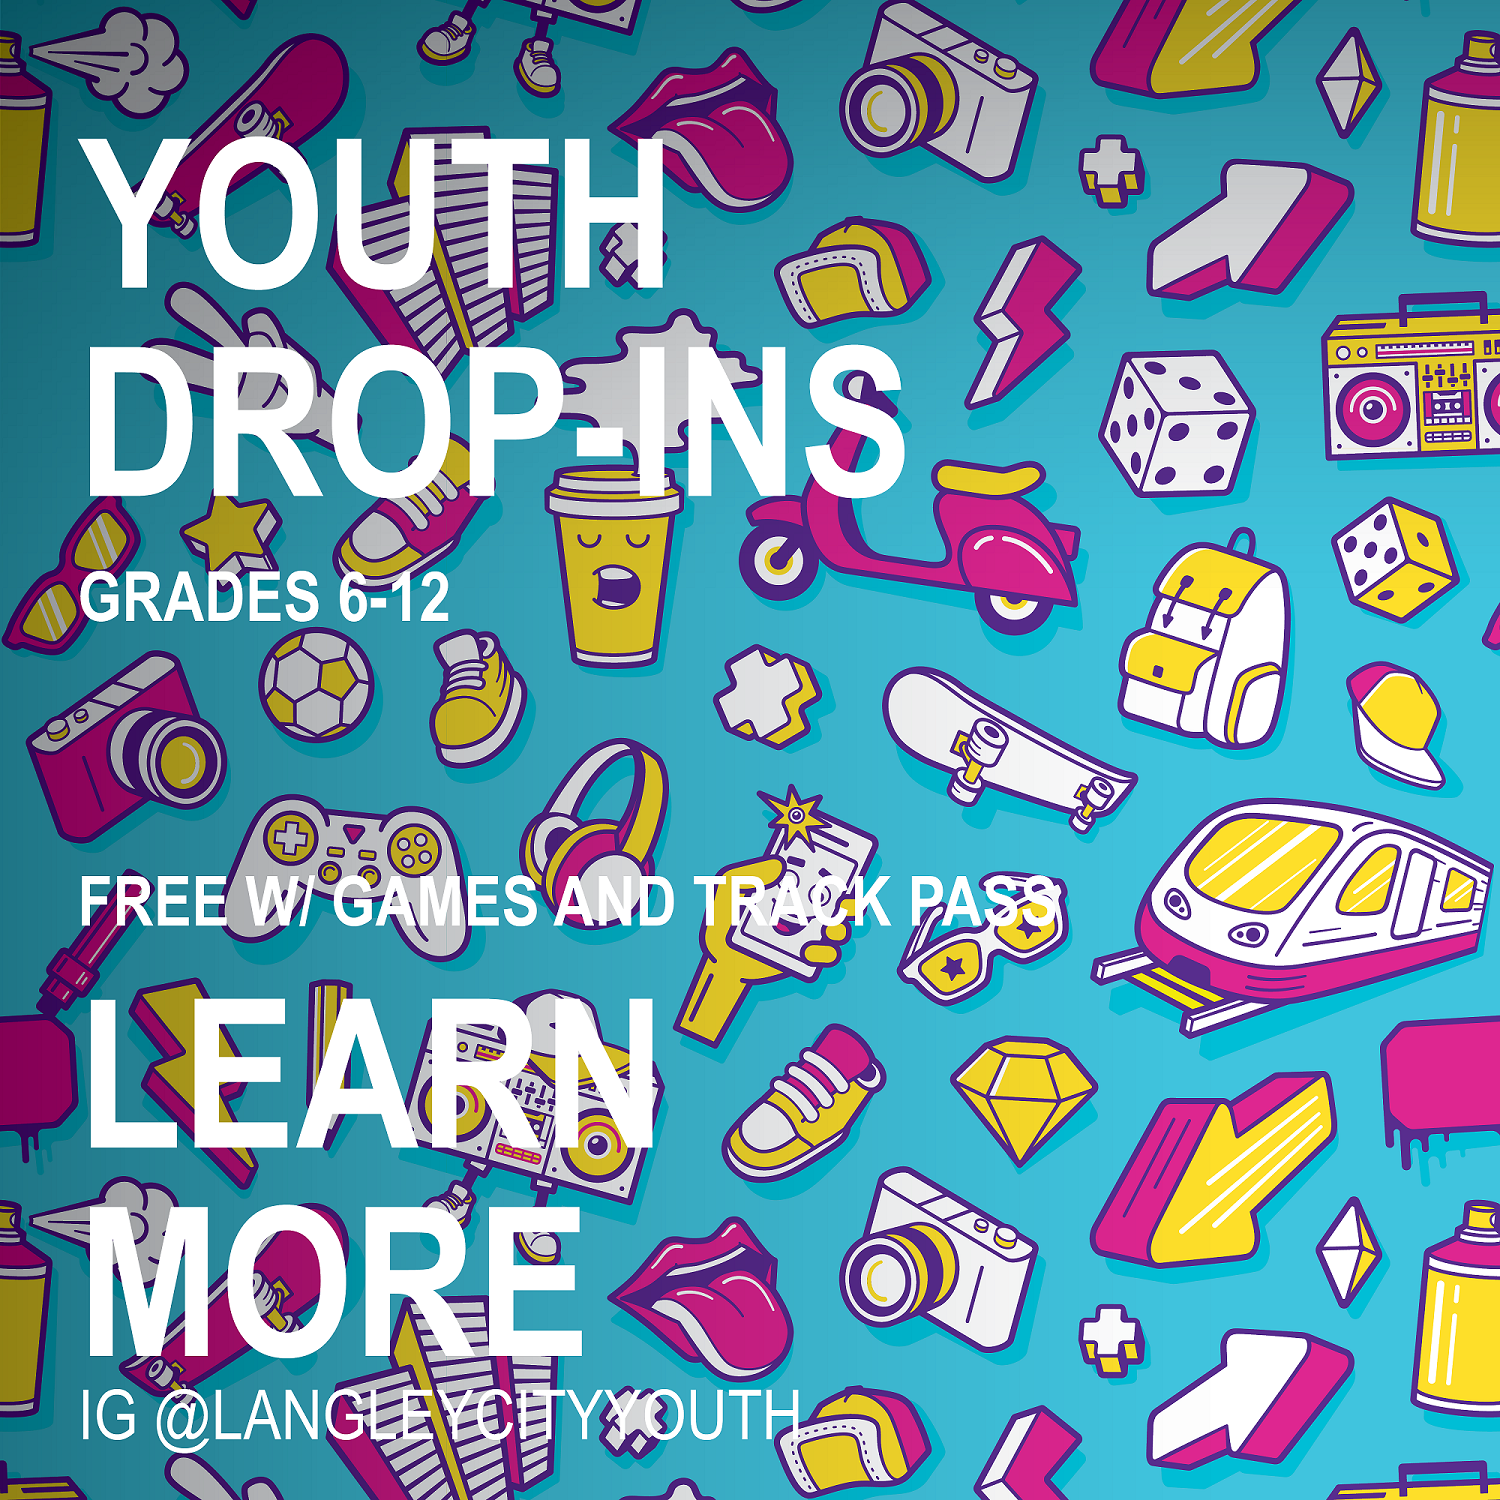 Youth Drop-ins